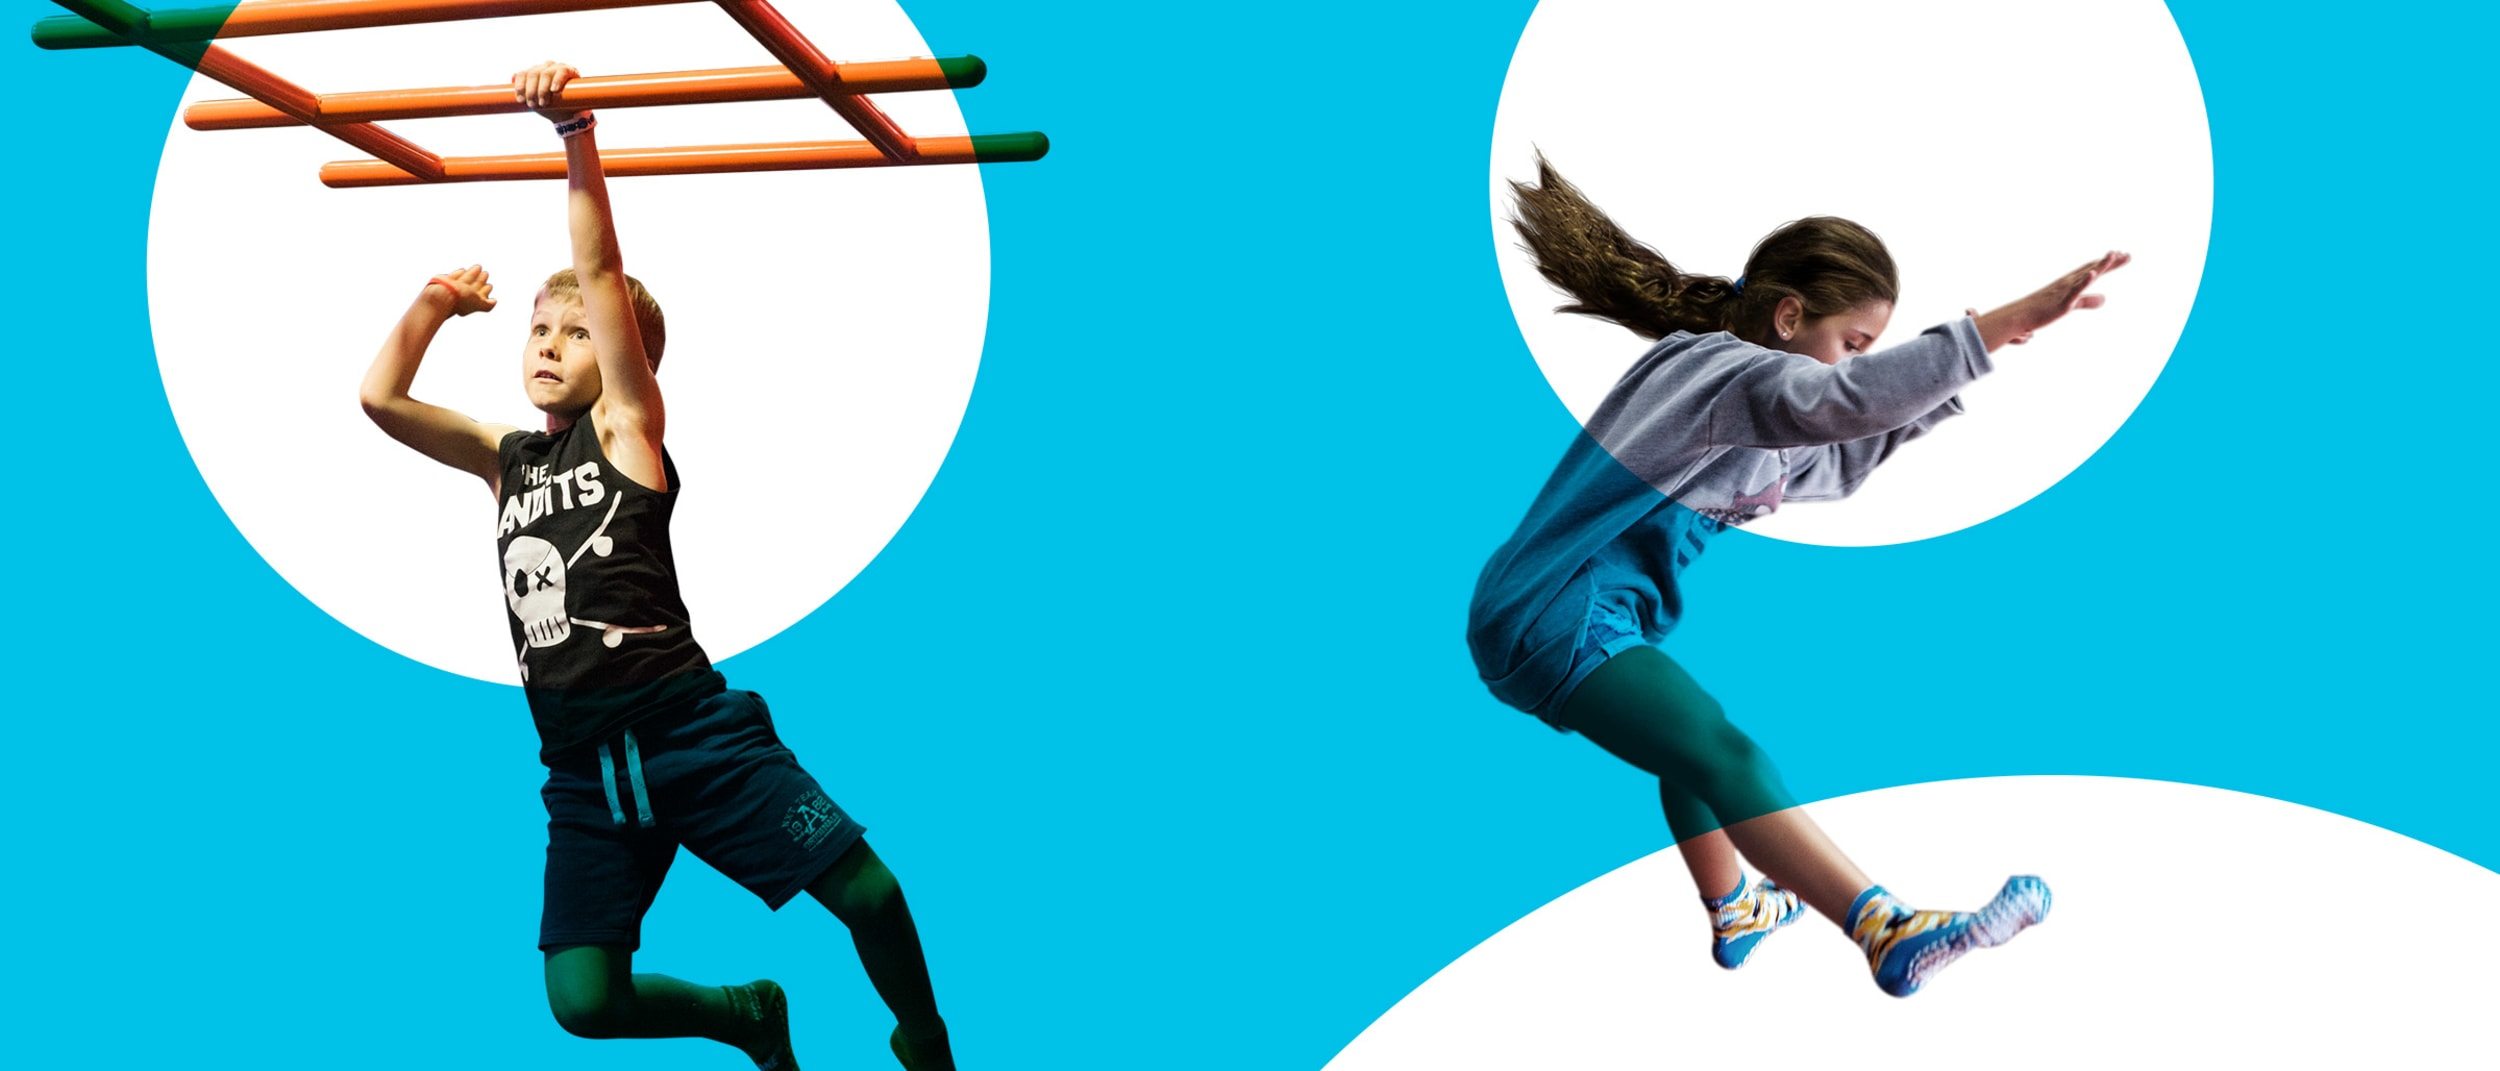 More boing for ya buck at Sky Zone these school holidays